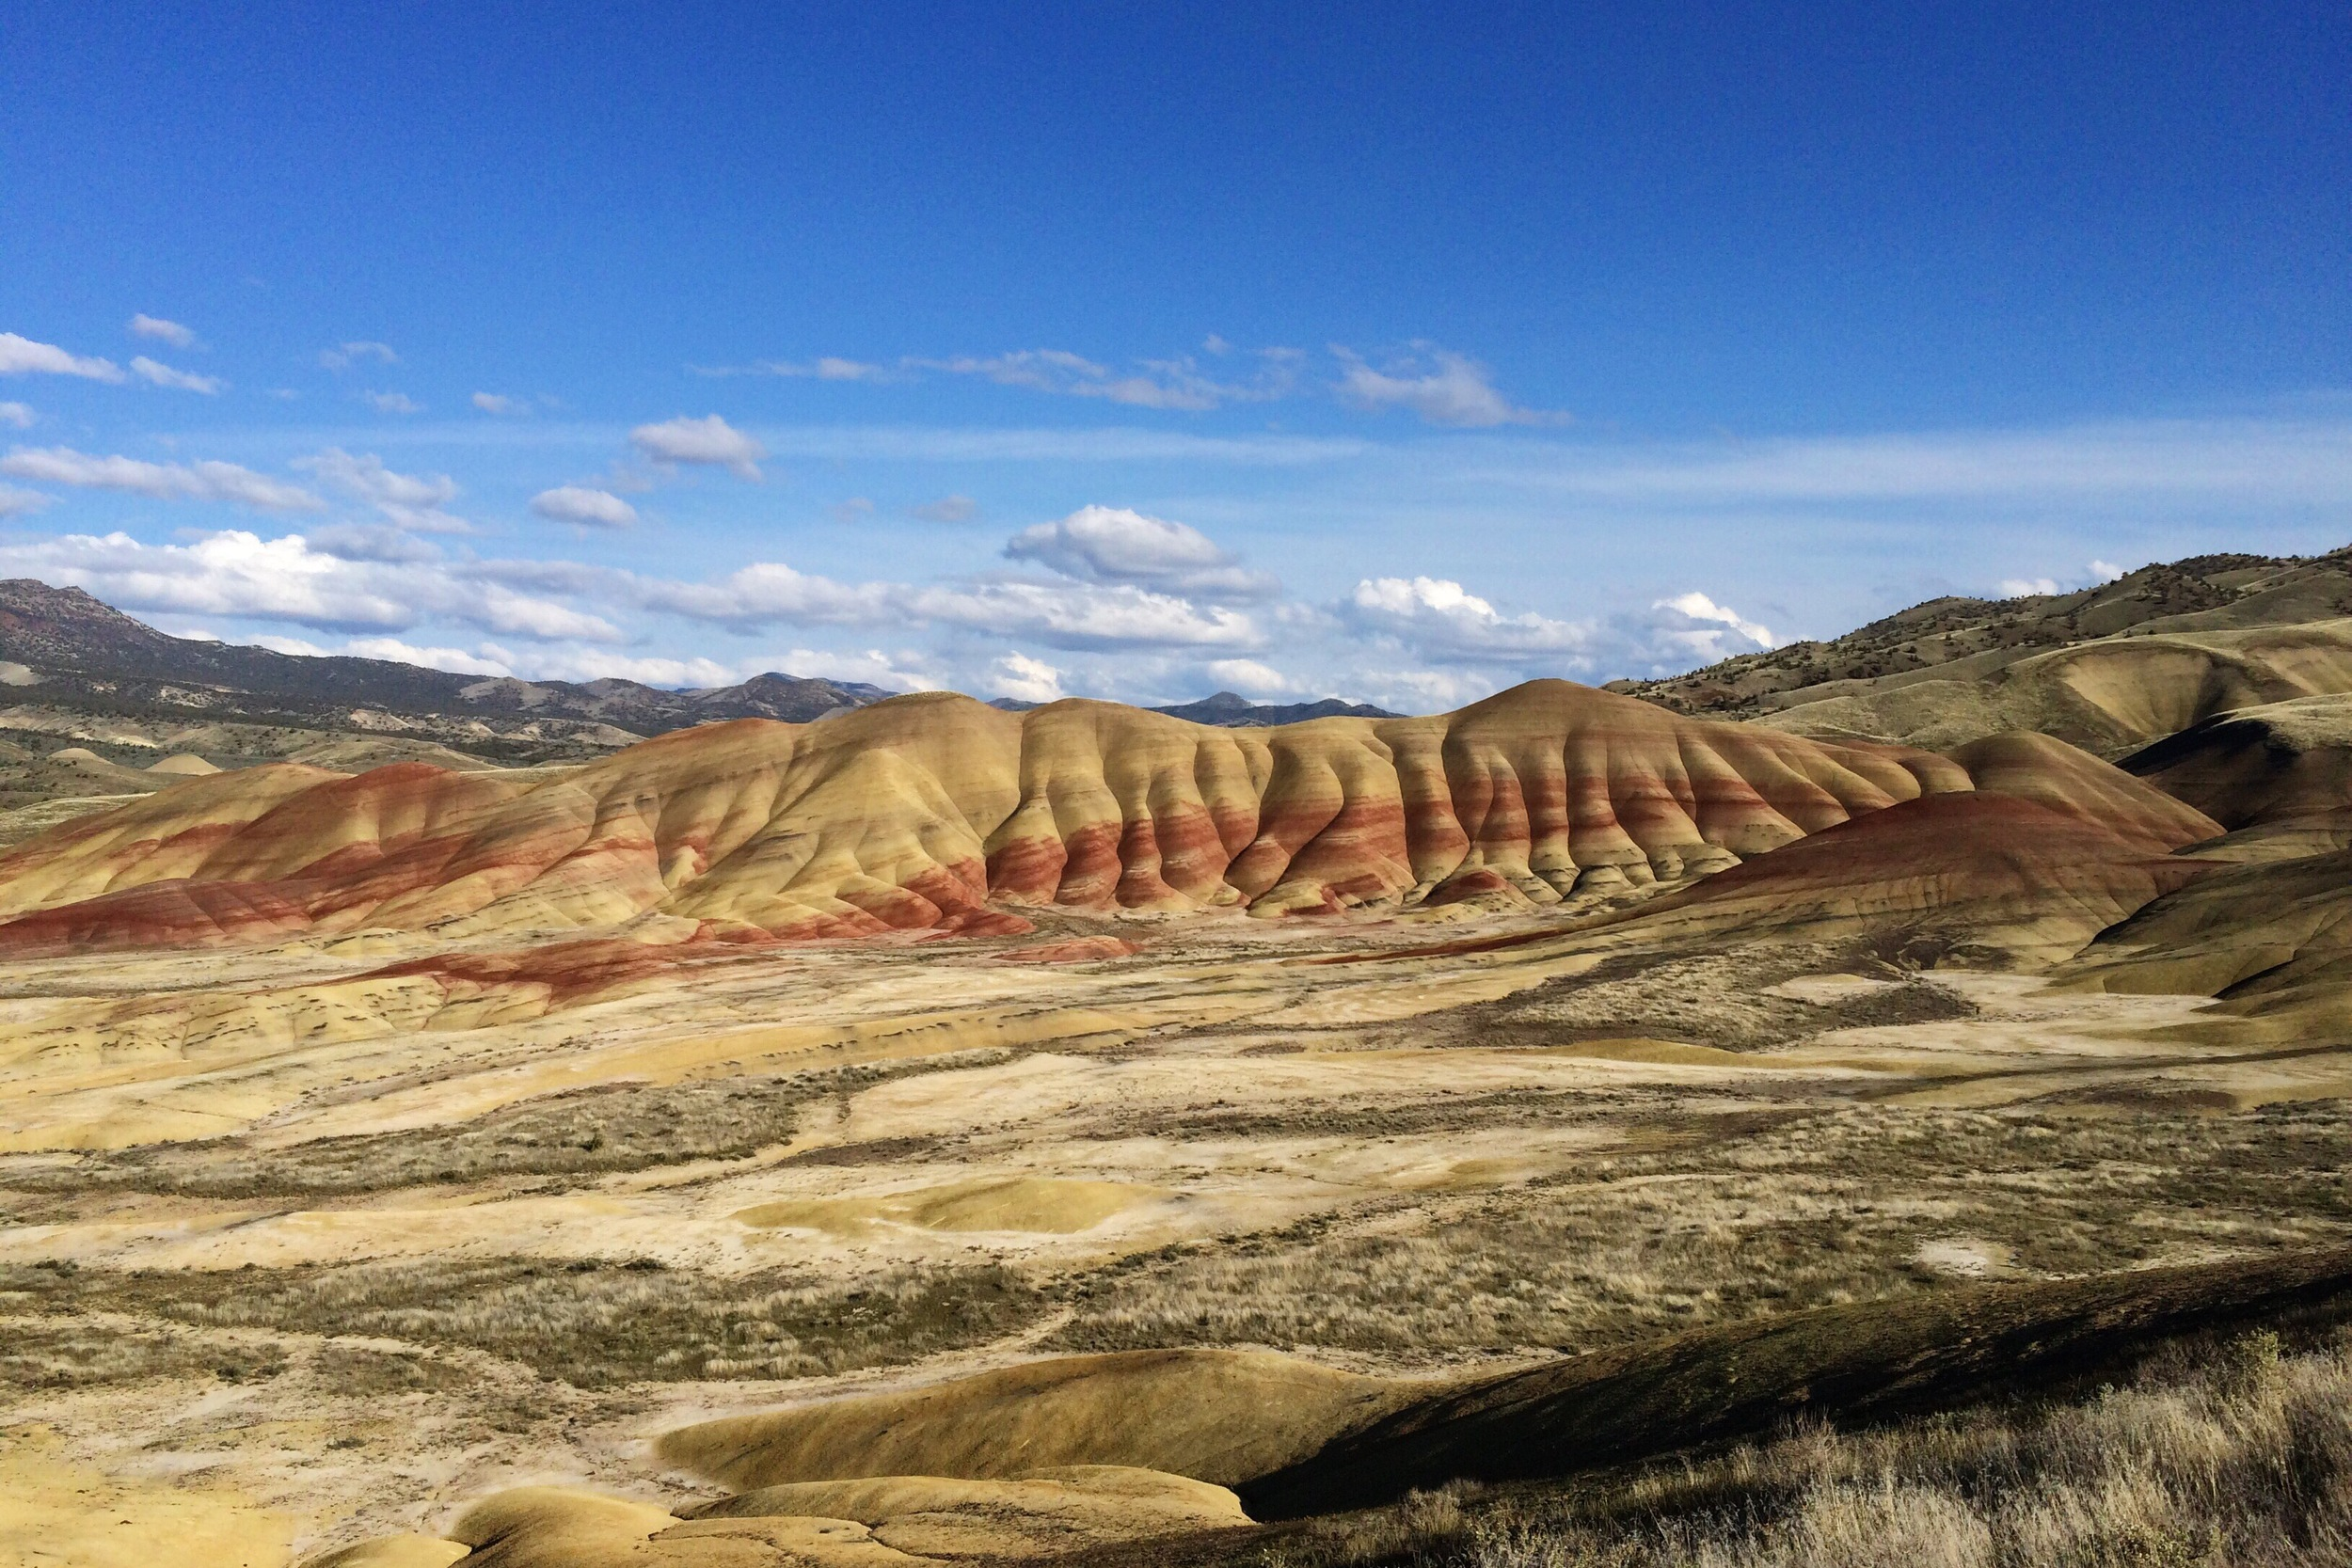 PAINTED HILLS UNIT OF THE JOHN DAY FOSSIL BEDS NATIONAL MONUMENT